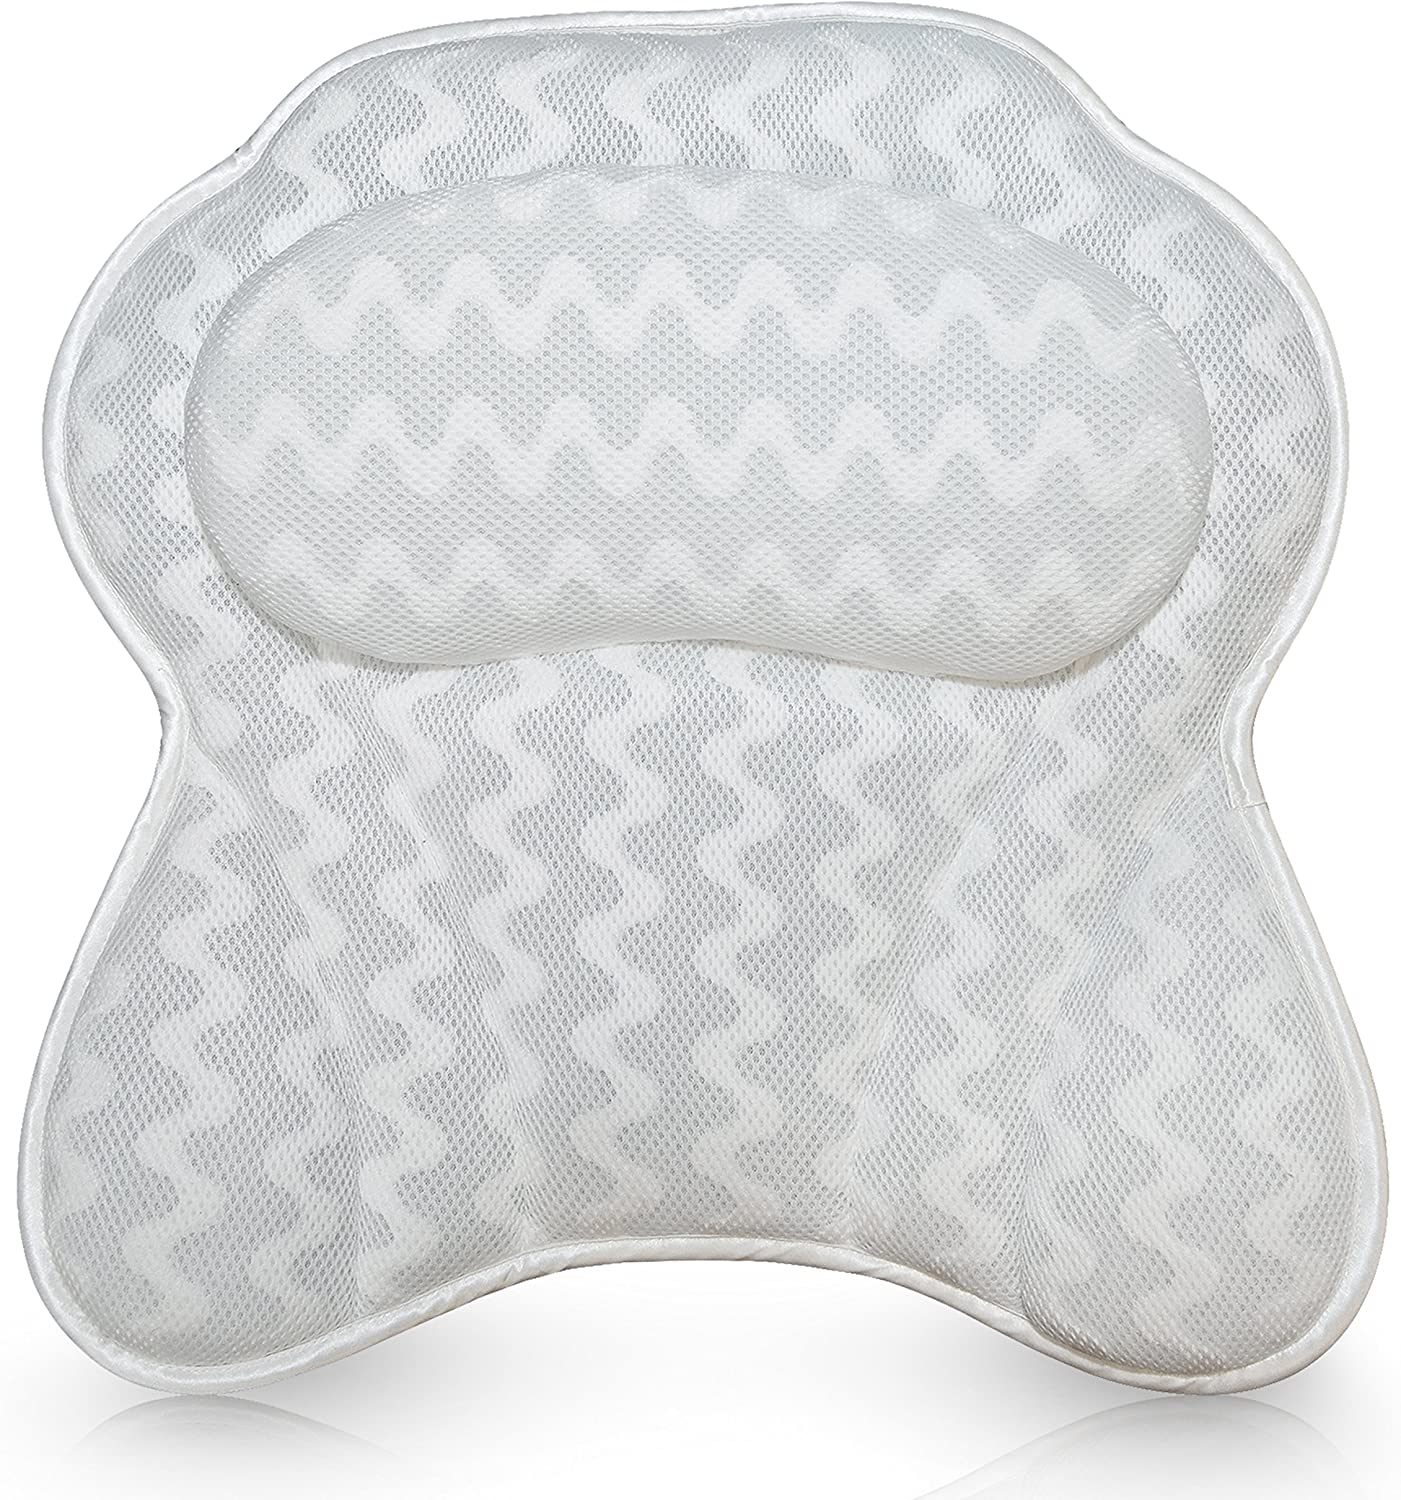 Ergonomic Bathtub Cushion for Neck Luxurious Bath Pillow for Women /& Men Head /& Shoulders Includes Wash Bag by Bath Haven with QuiltedAir Mesh for Breathable Comfort